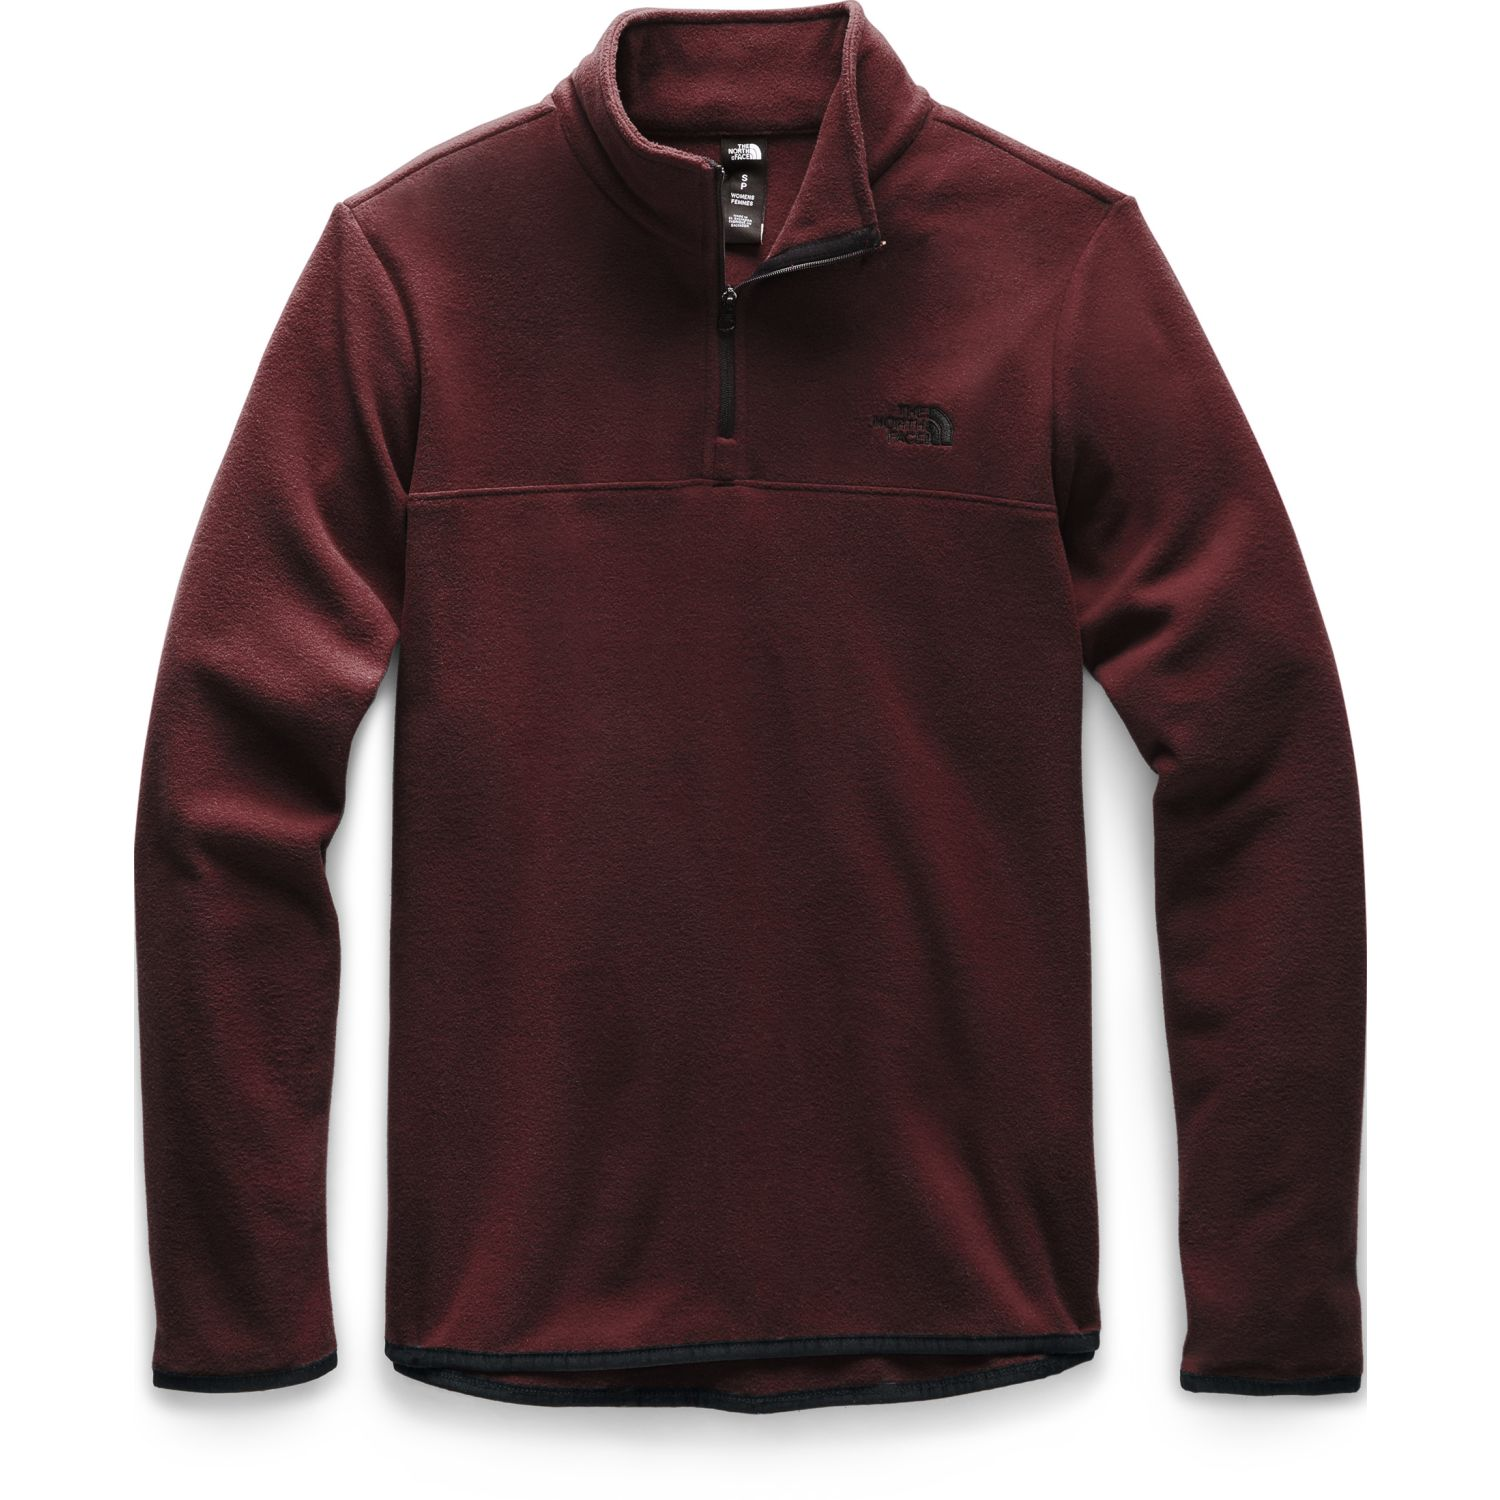 The North Face W Tka Glacier 1/4 Zip Vino Jerseys